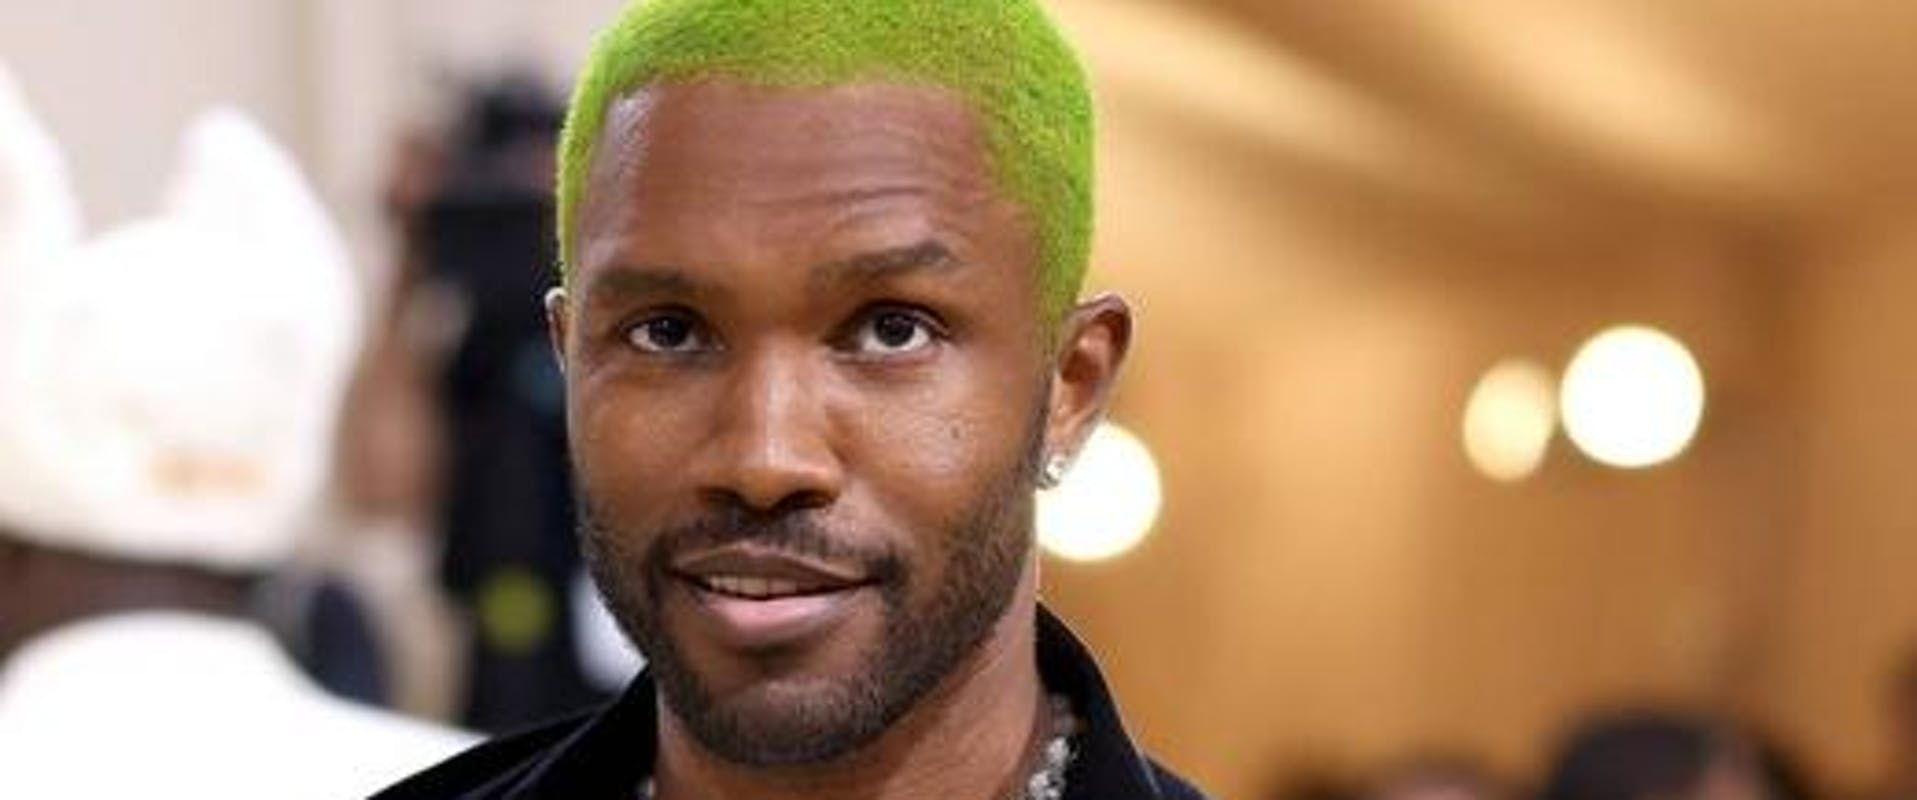 Frank Ocean Reportedly Shopping New Album to Labels